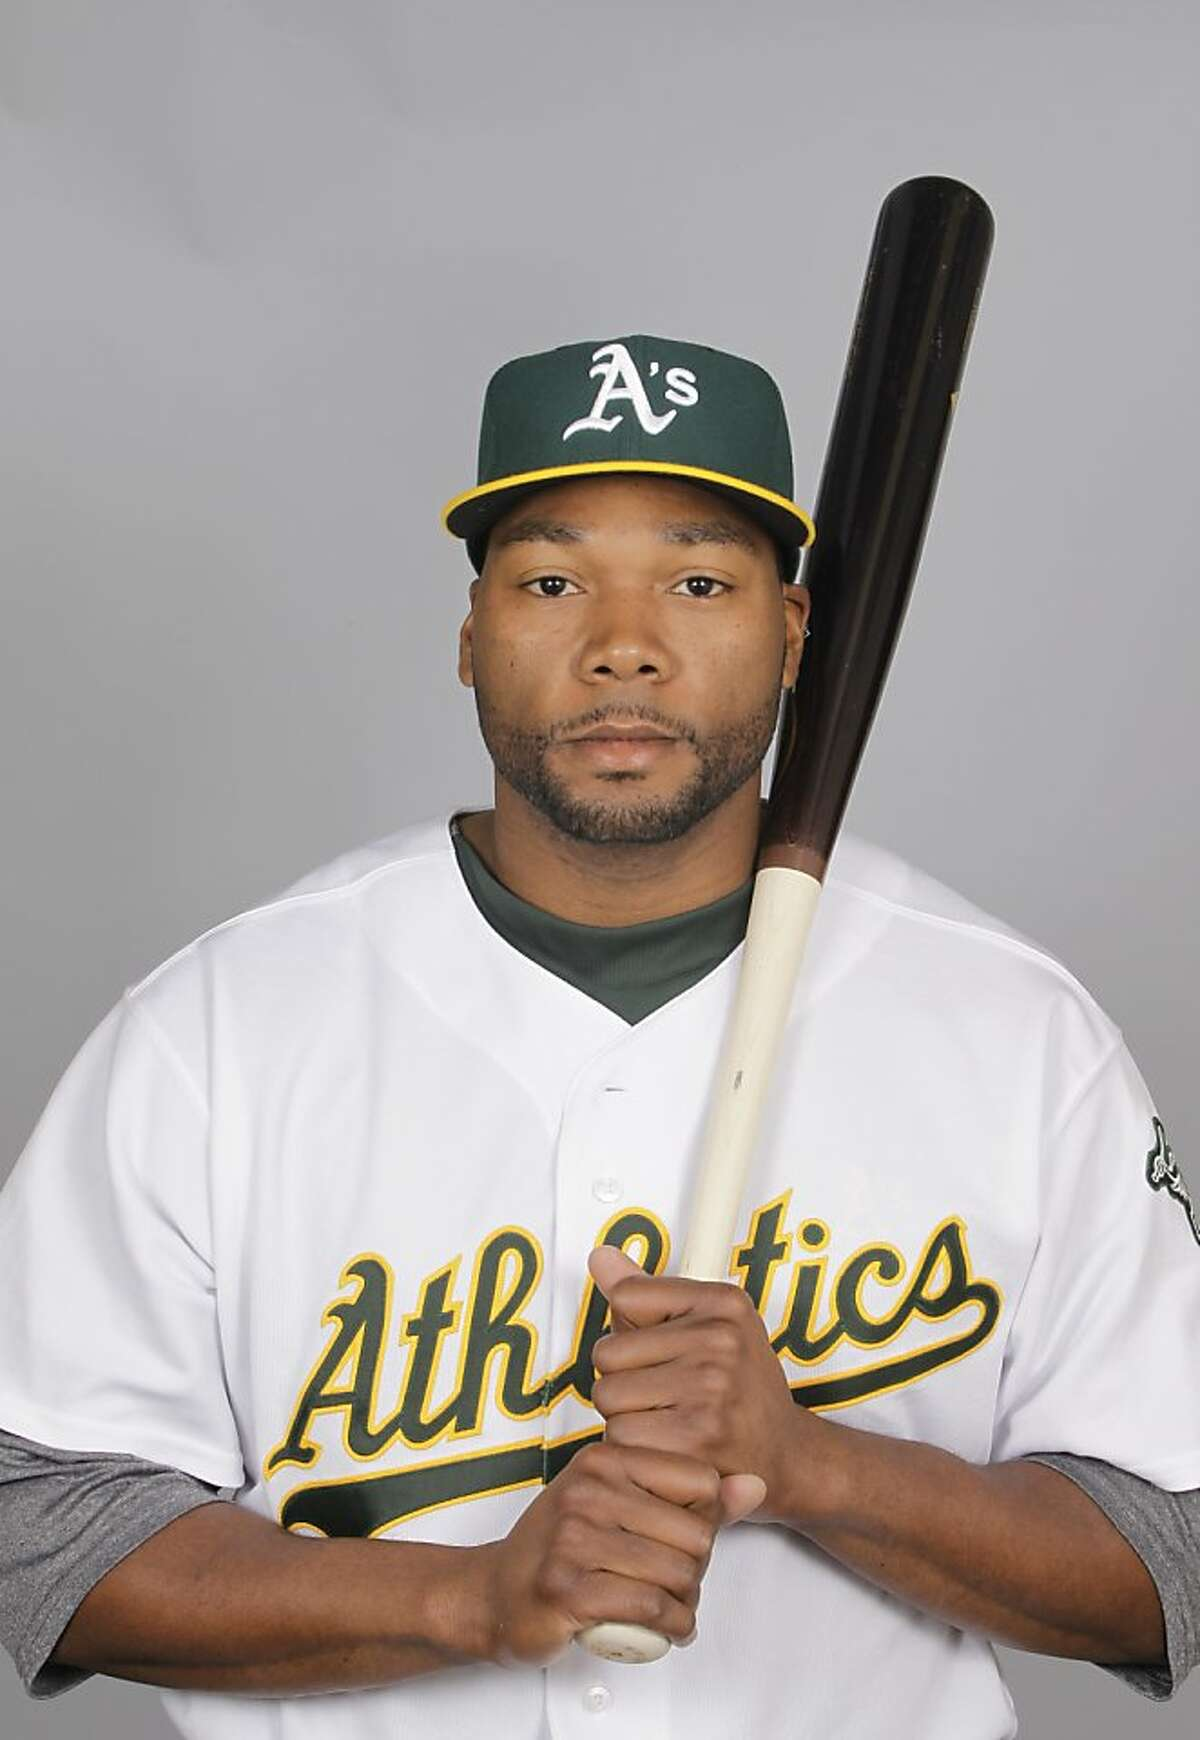 This is a 2012 photo of Brandon Allen of the Oakland Athletics baseball team. This image reflects the Oakland Athletics active roster as of Feb. 27, 2012 when this image was taken. (AP Photo/Darron Cummings)